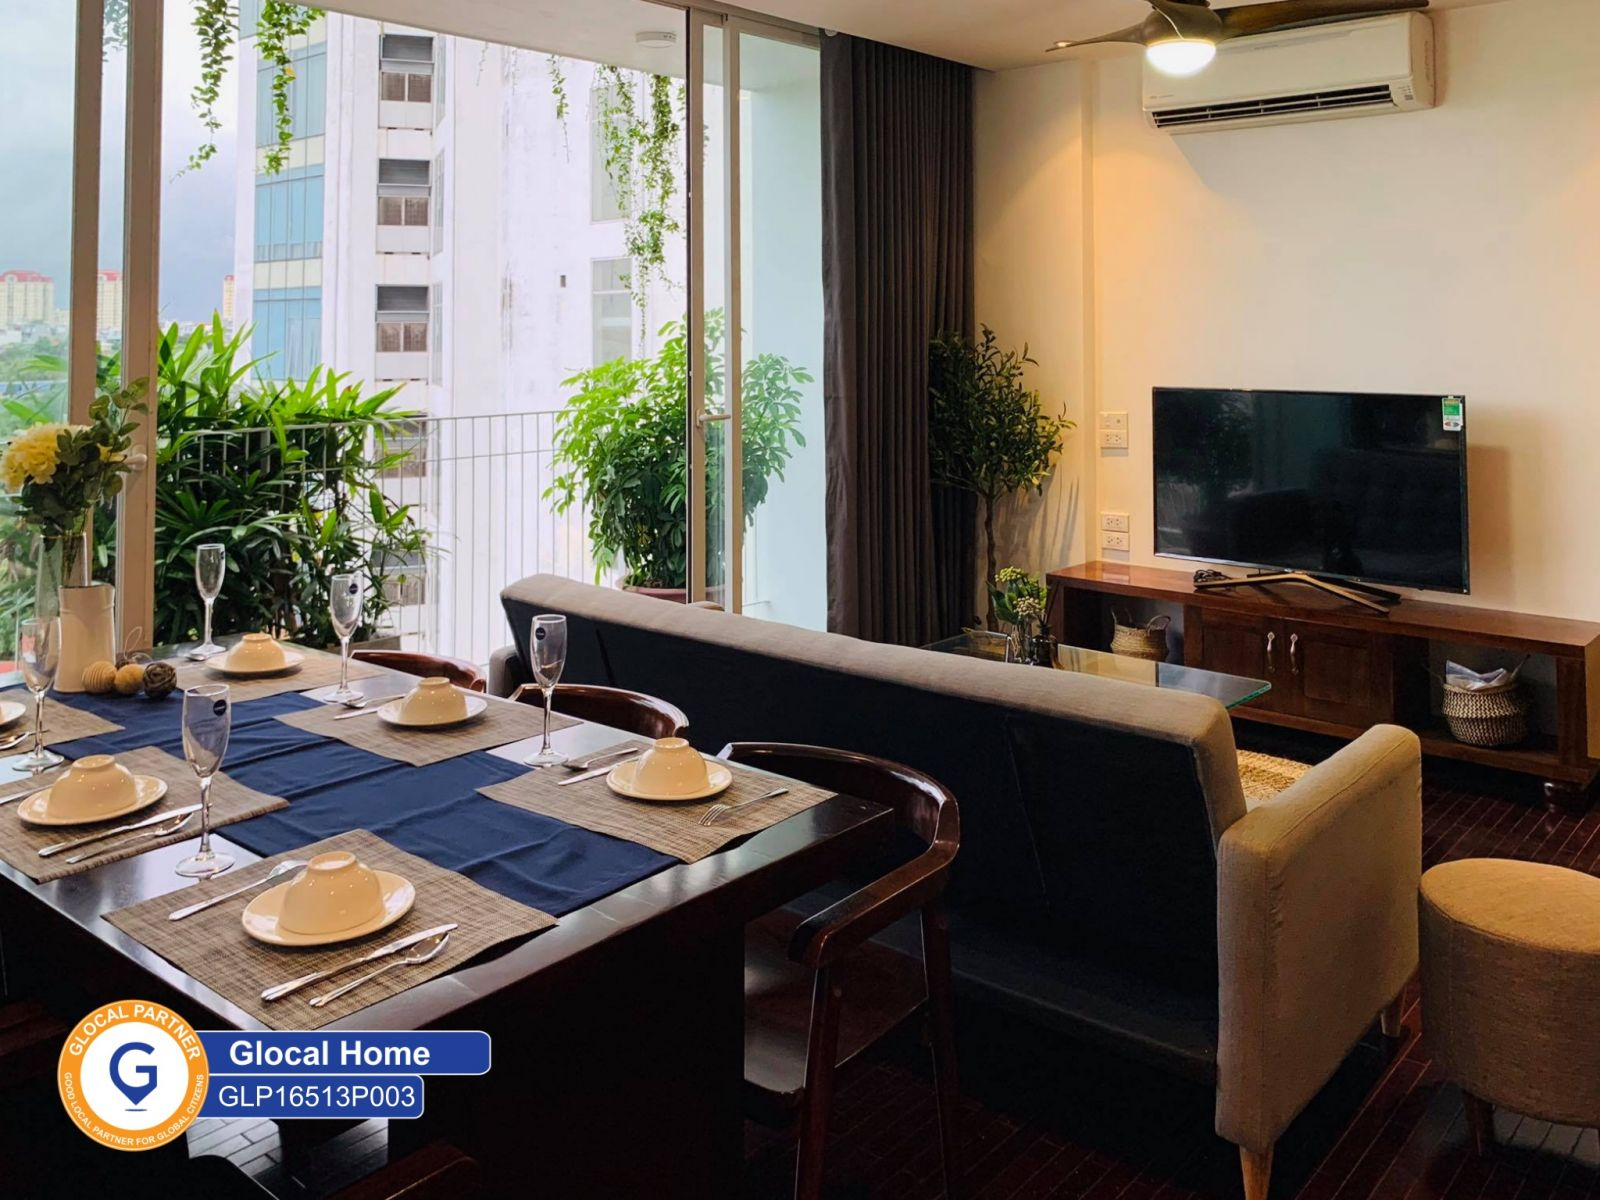 3 bedroom apartment with nice view balcony on Au Co Street